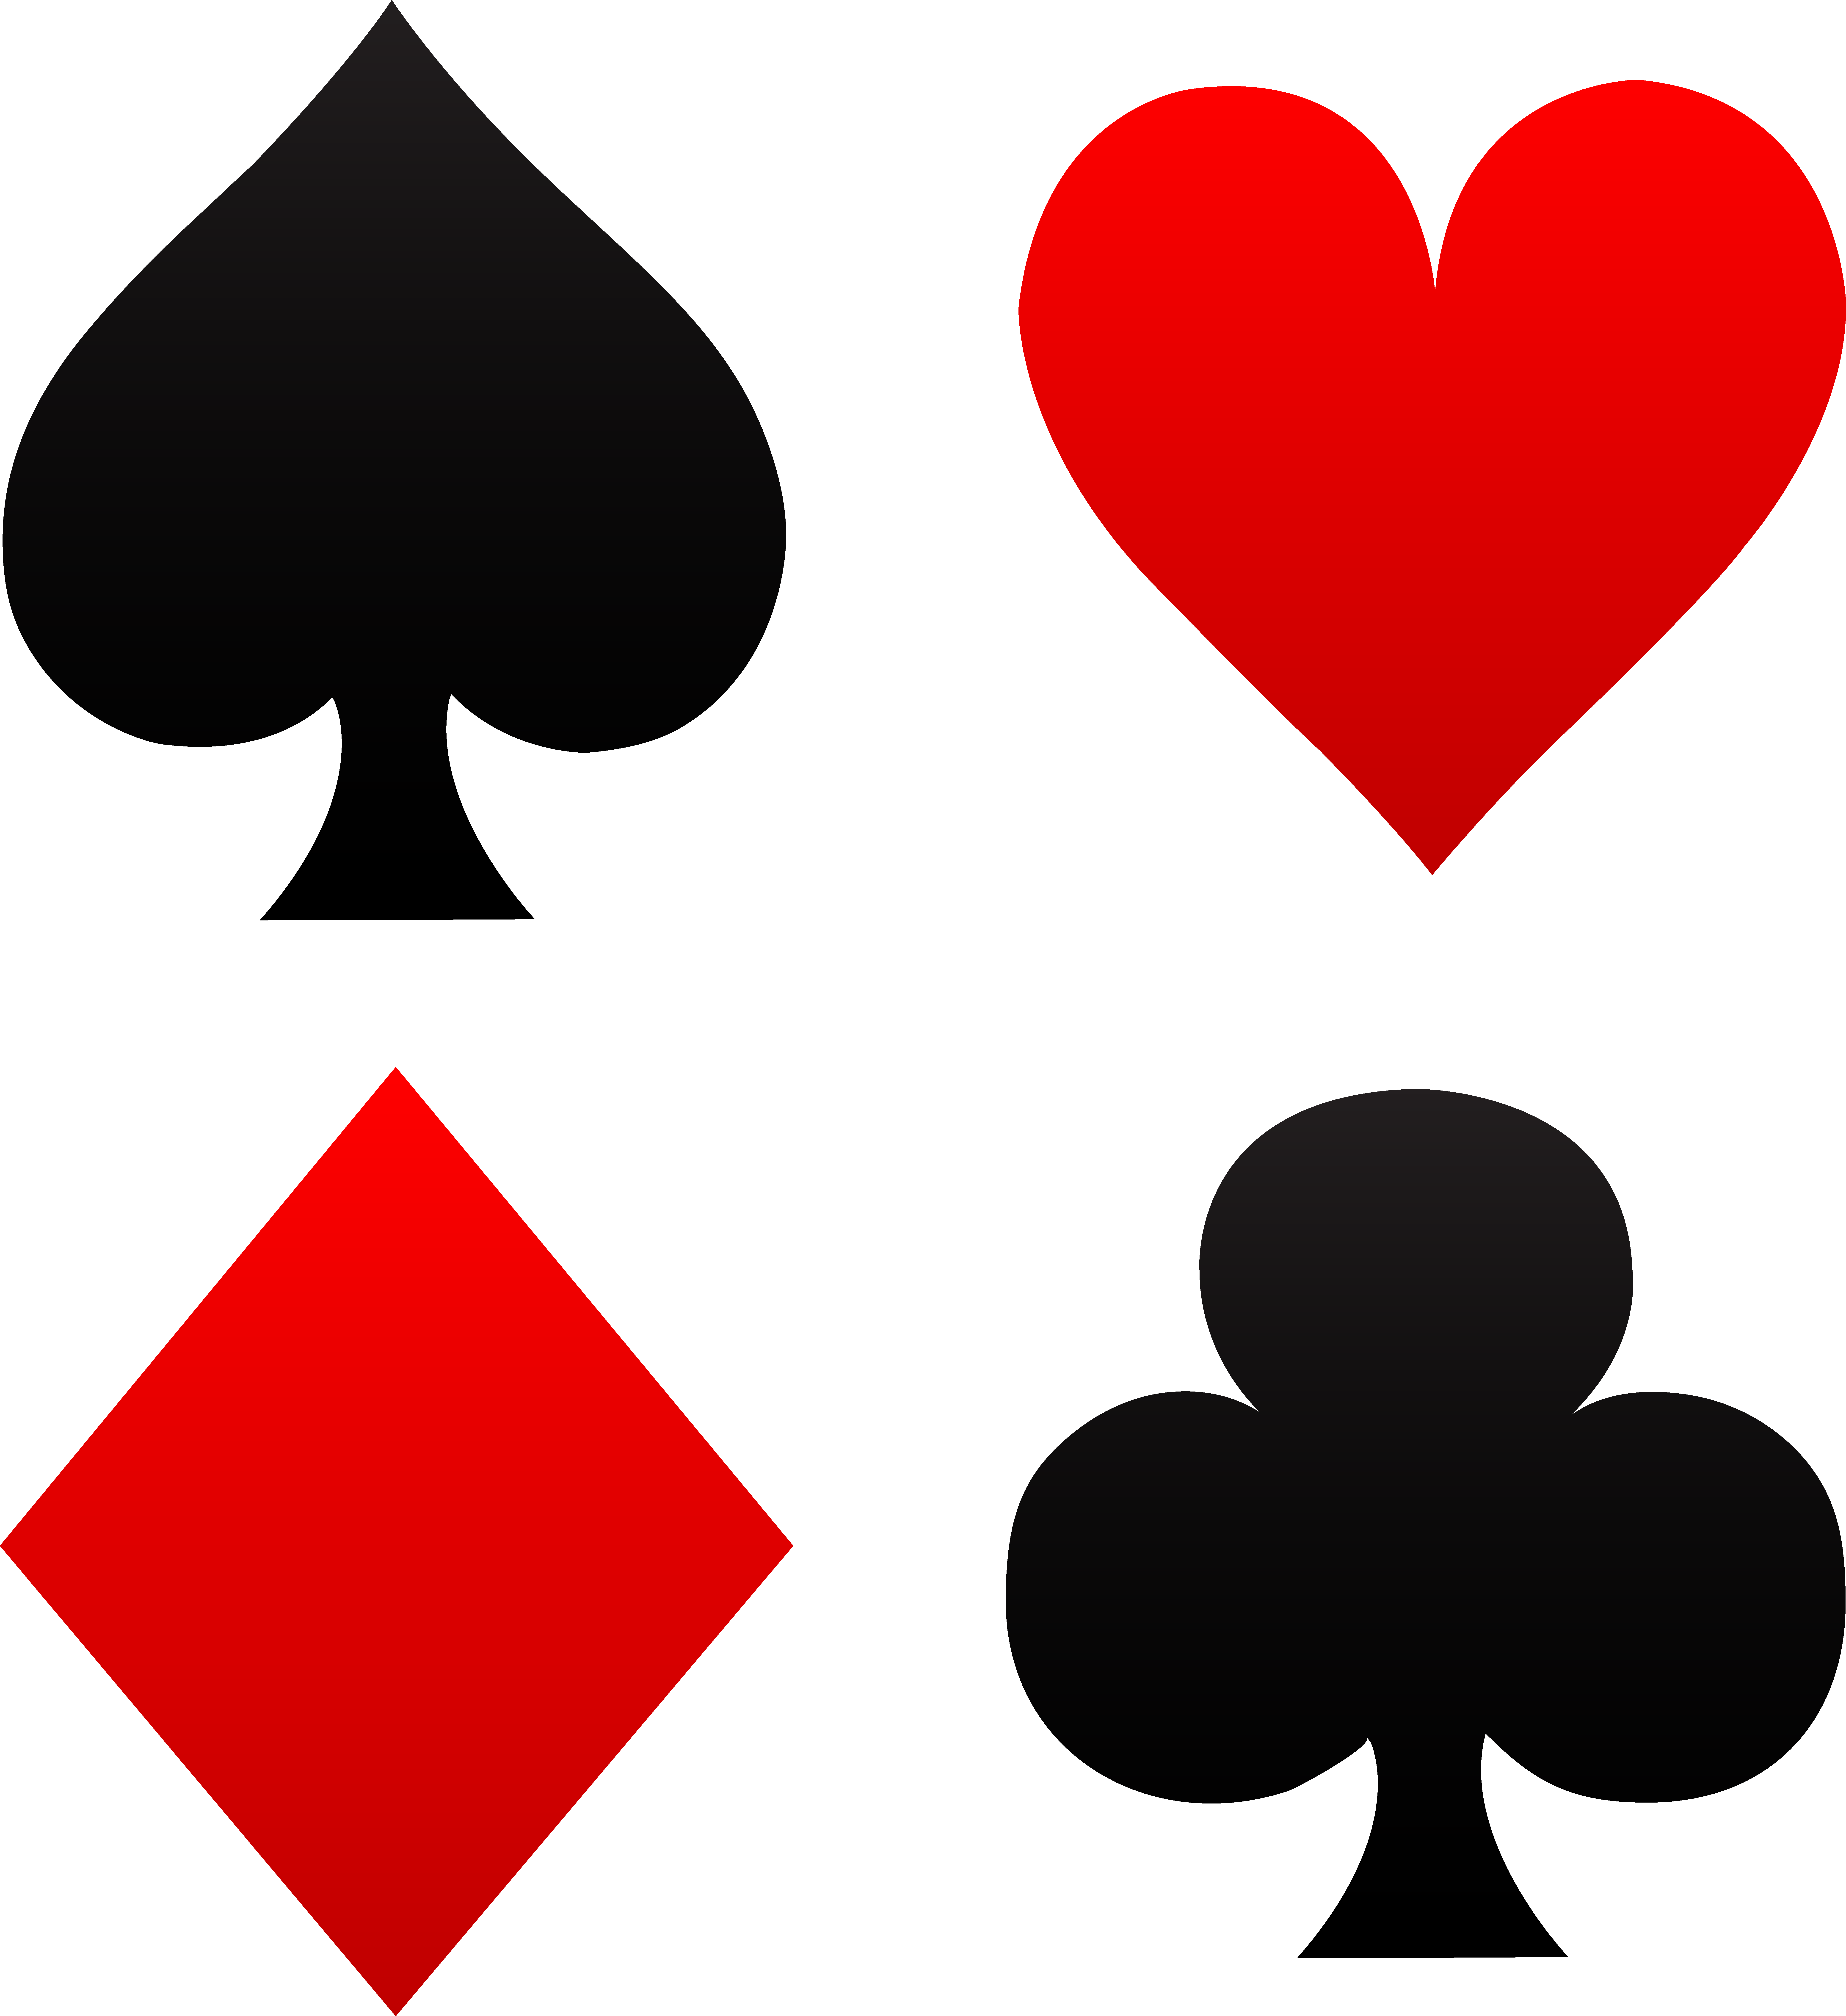 Playing card symbols all things groom pinterest playing playing card symbols biocorpaavc